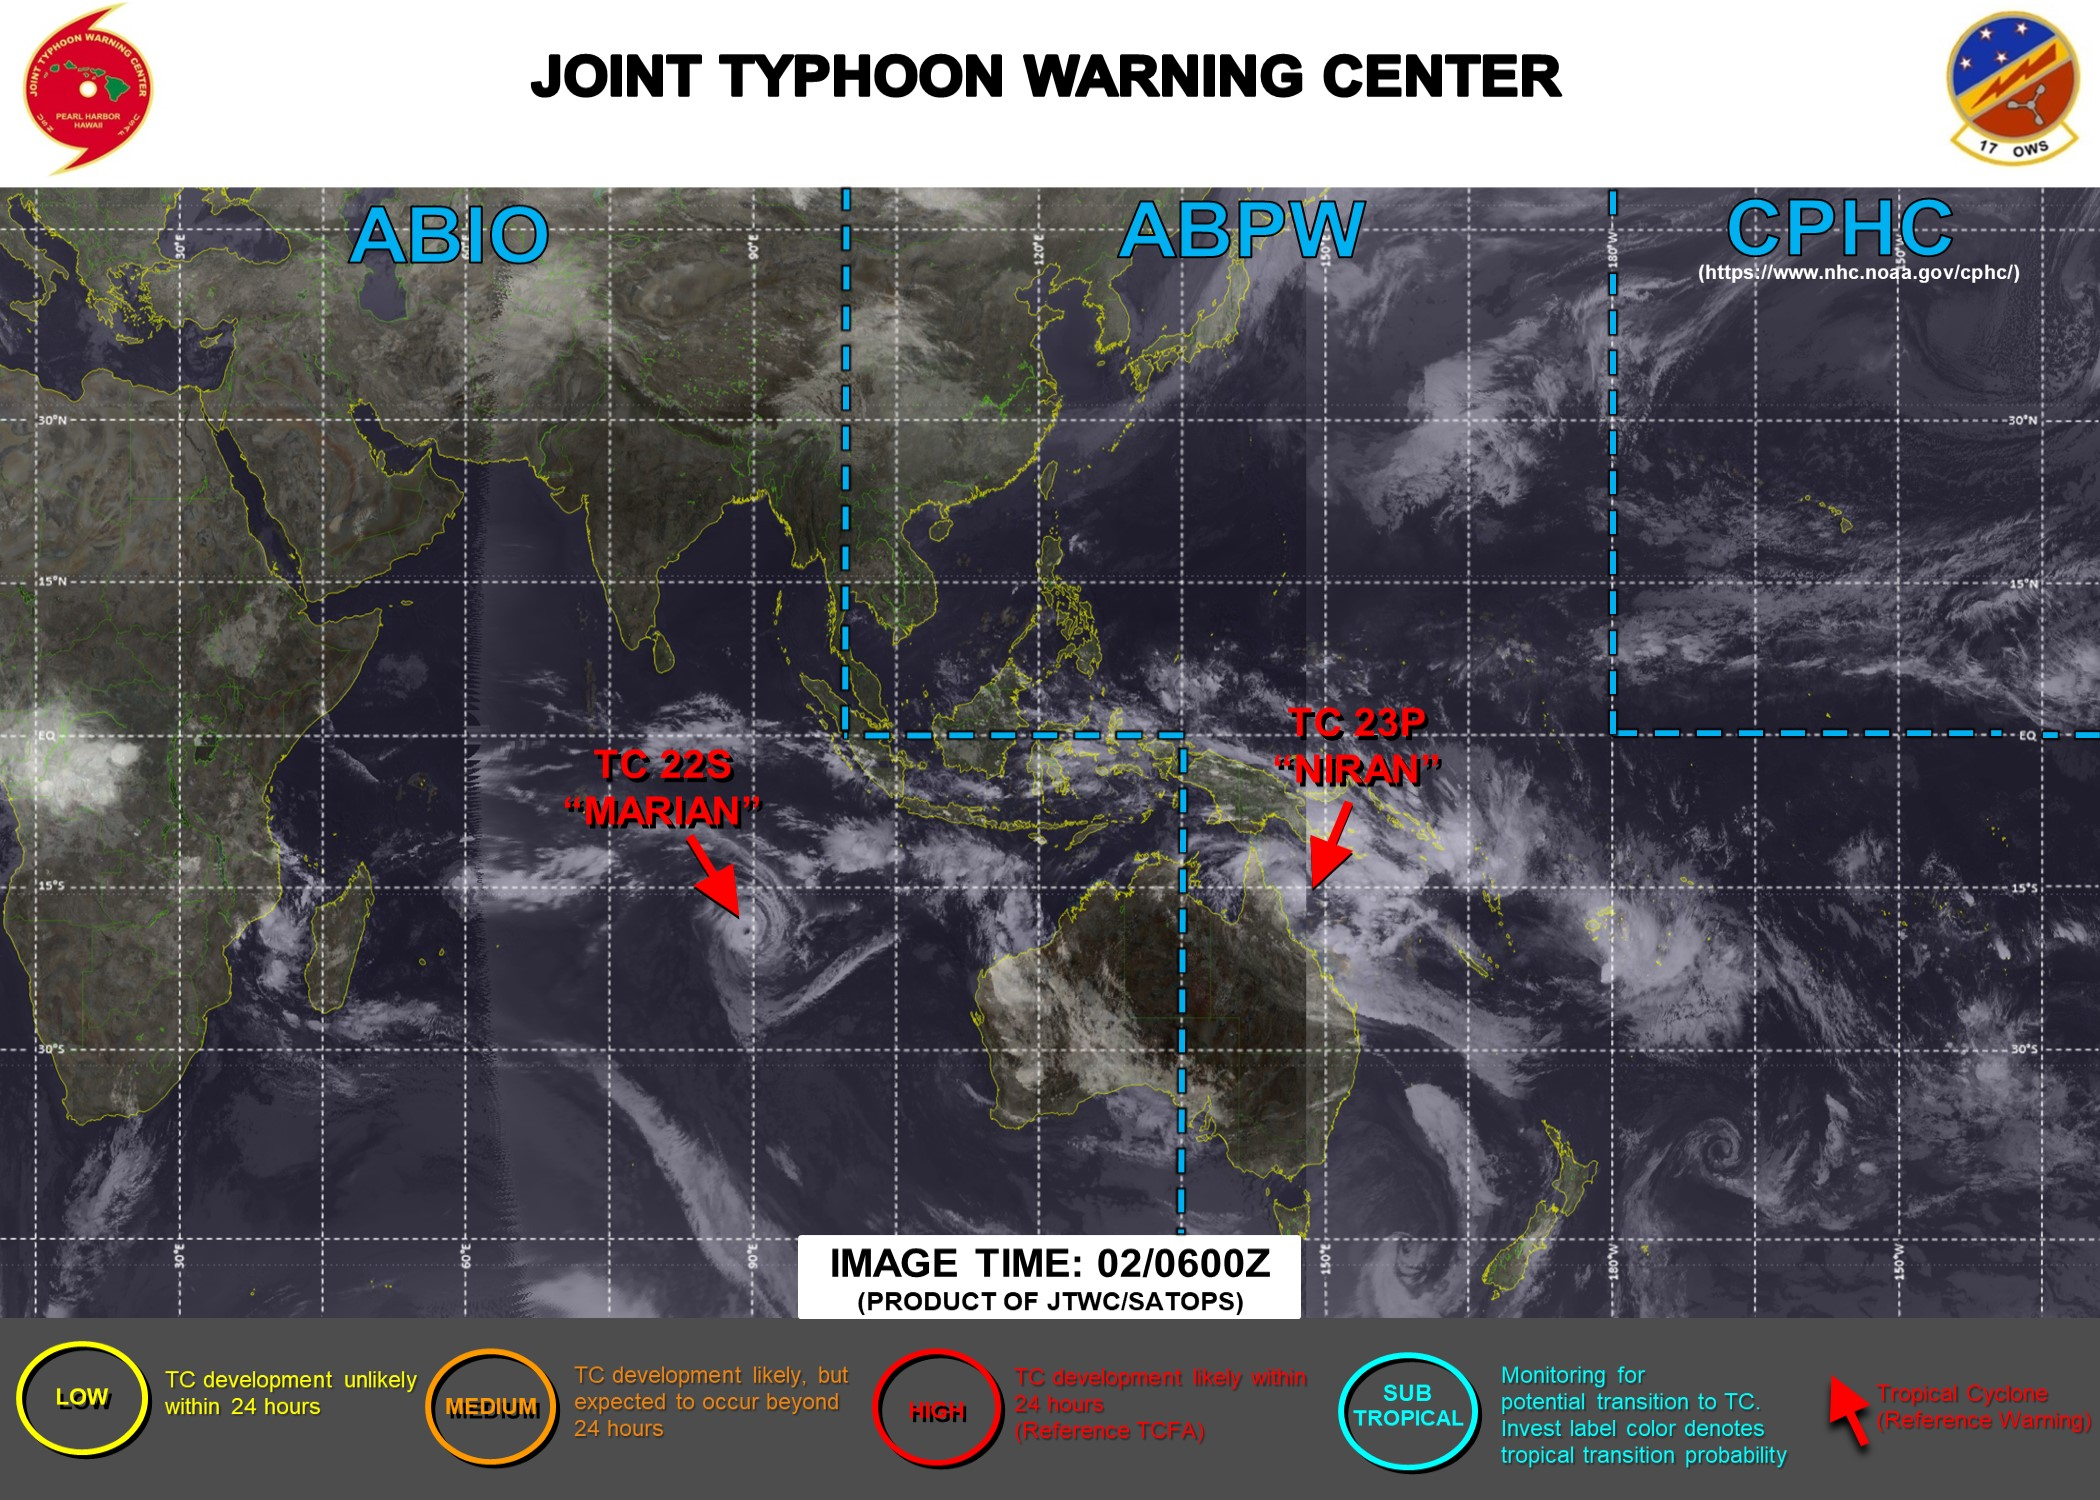 02/15UTC.  JTWC IS ISSUING 3HOURLY WARNING ON TC 23P(NIRAN) AND 12HOURLY WARNINGS ON TC 22S(MARIAN). 3 HOURLY SATELLITE BULLETINS ARE ISSUED FOR BOTH SYSTEMS.